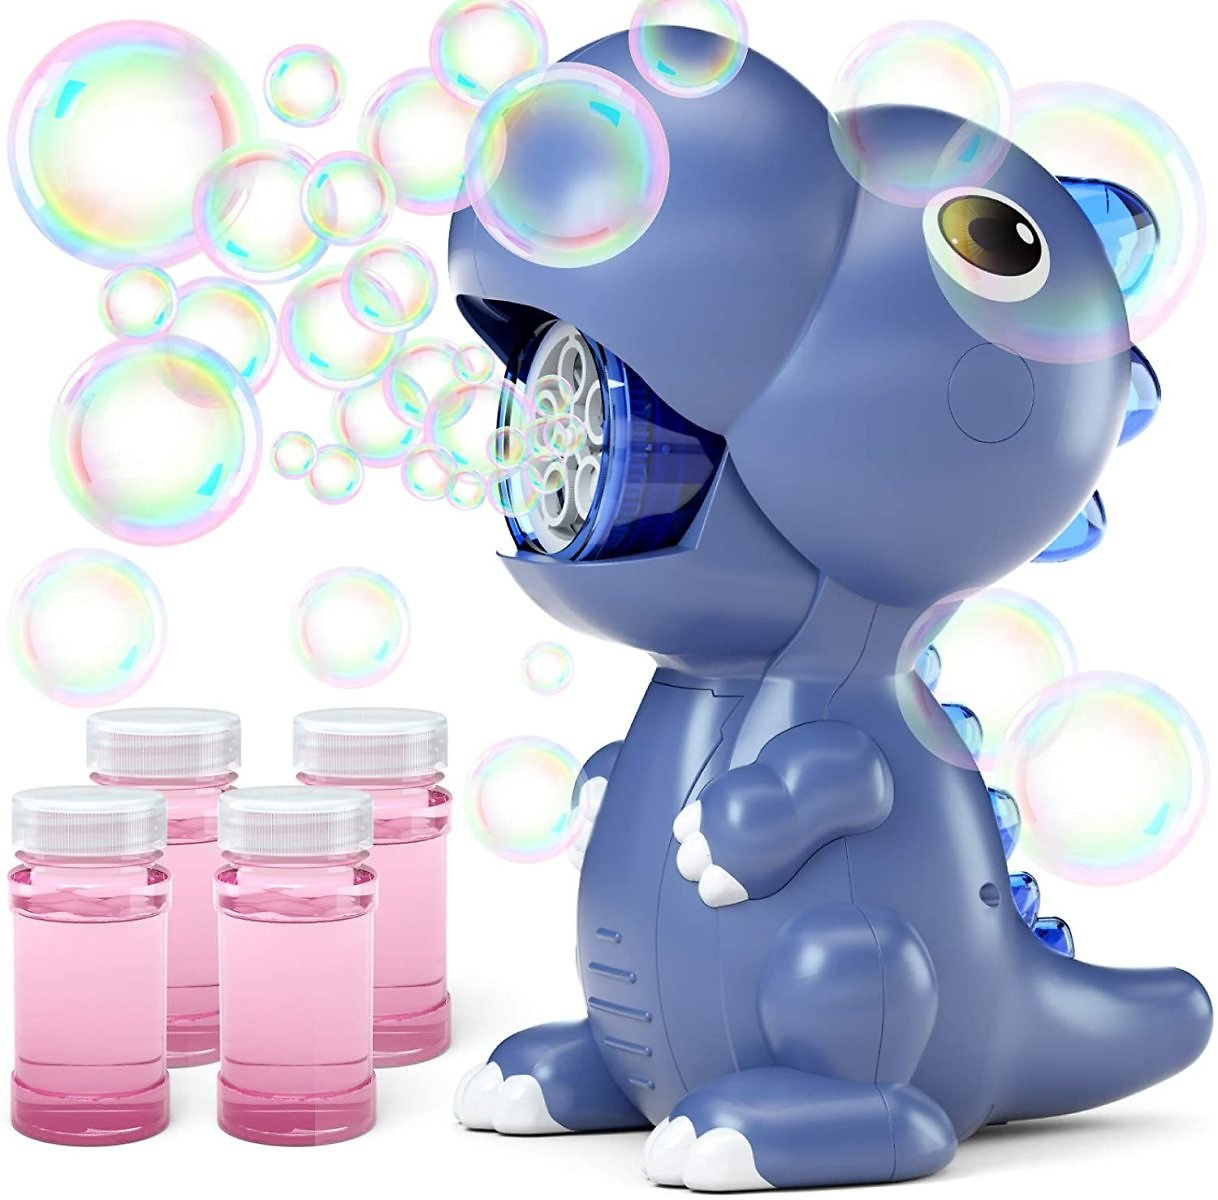 Jasonwell Bubble Machine for Kids - Automatic Dinosaur Bubble Blower for Toddlers Bubble Maker for Outdoor Indoor Parties Birthday Bubble Toys for Girls Boys 3 4 5 6 7 8 Year Old